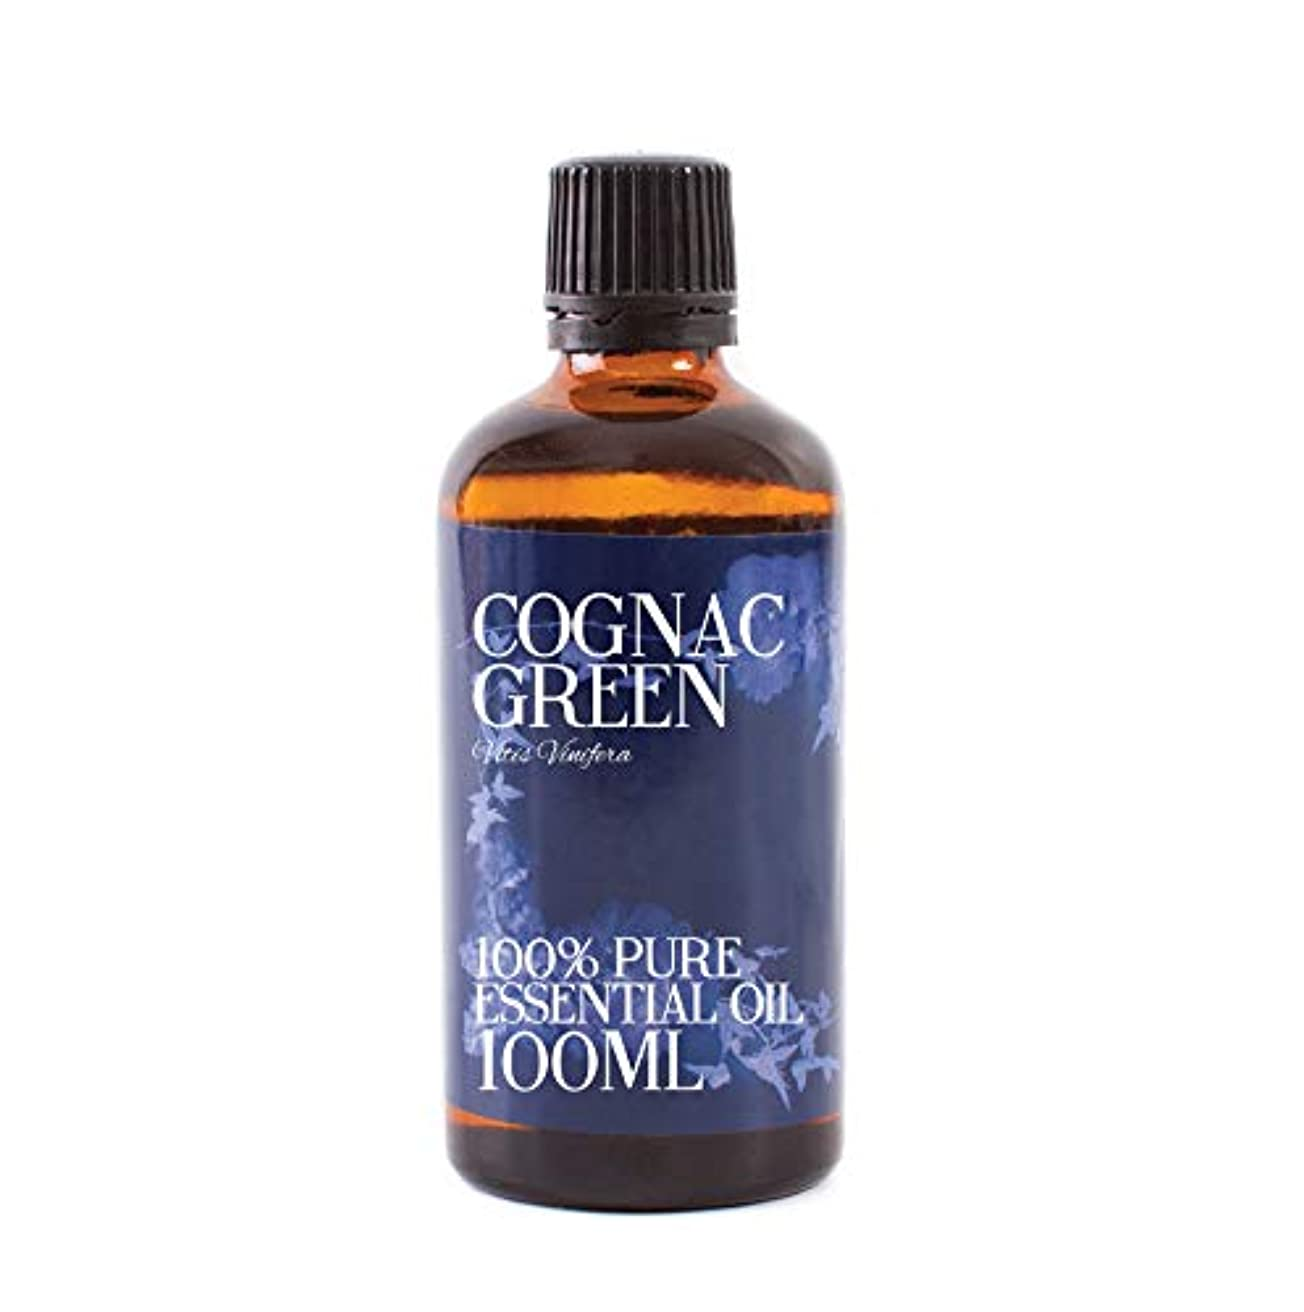 任命する気難しいしがみつくMystic Moments | Cognac Green Essential Oil - 100ml - 100% Pure